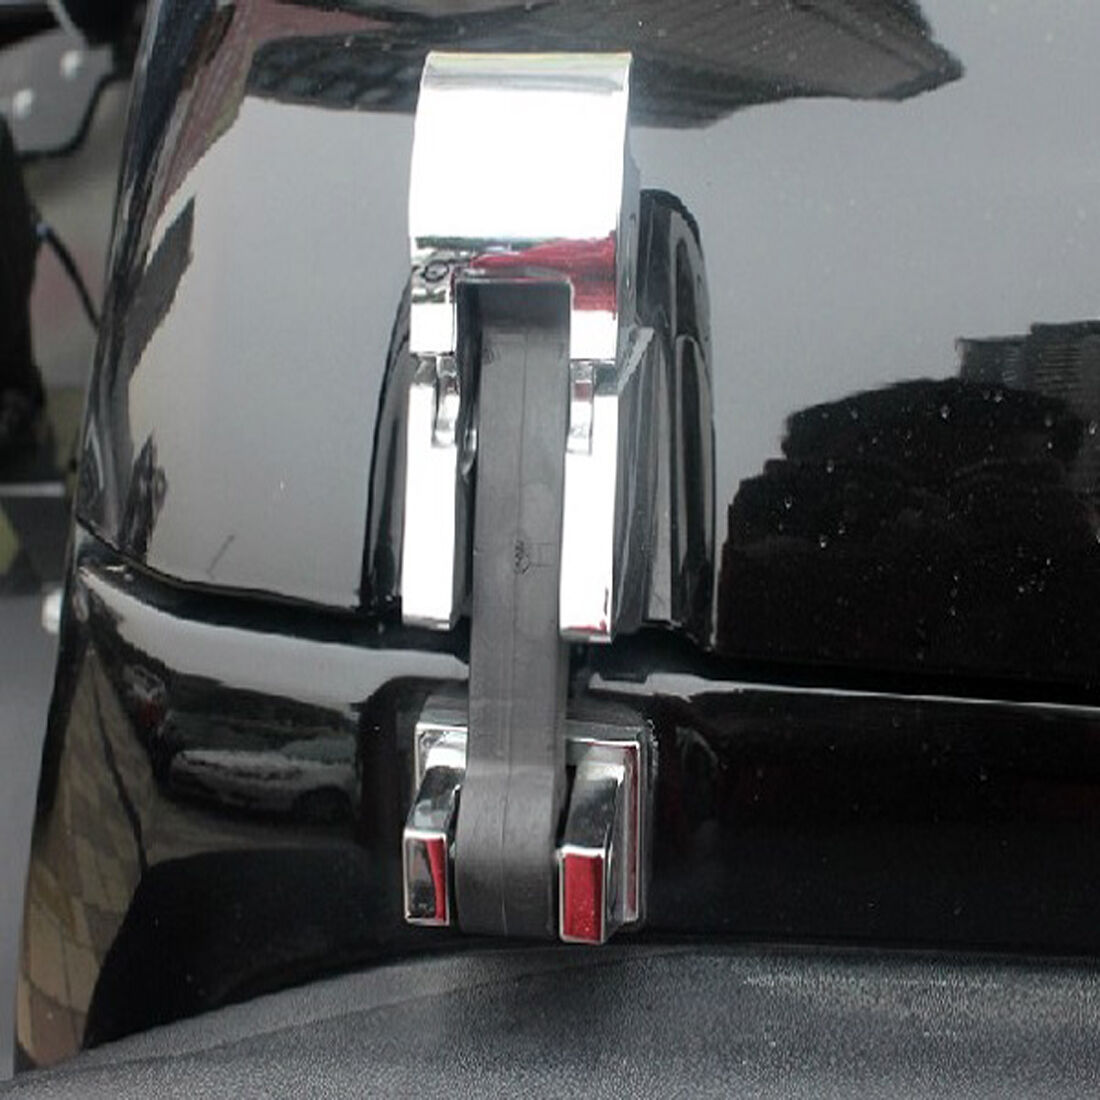 2pcs Aluminum Hood Catch Lock Latches Kit For Jeep Wrangler Jk 2 Release 1 Of 6free Shipping